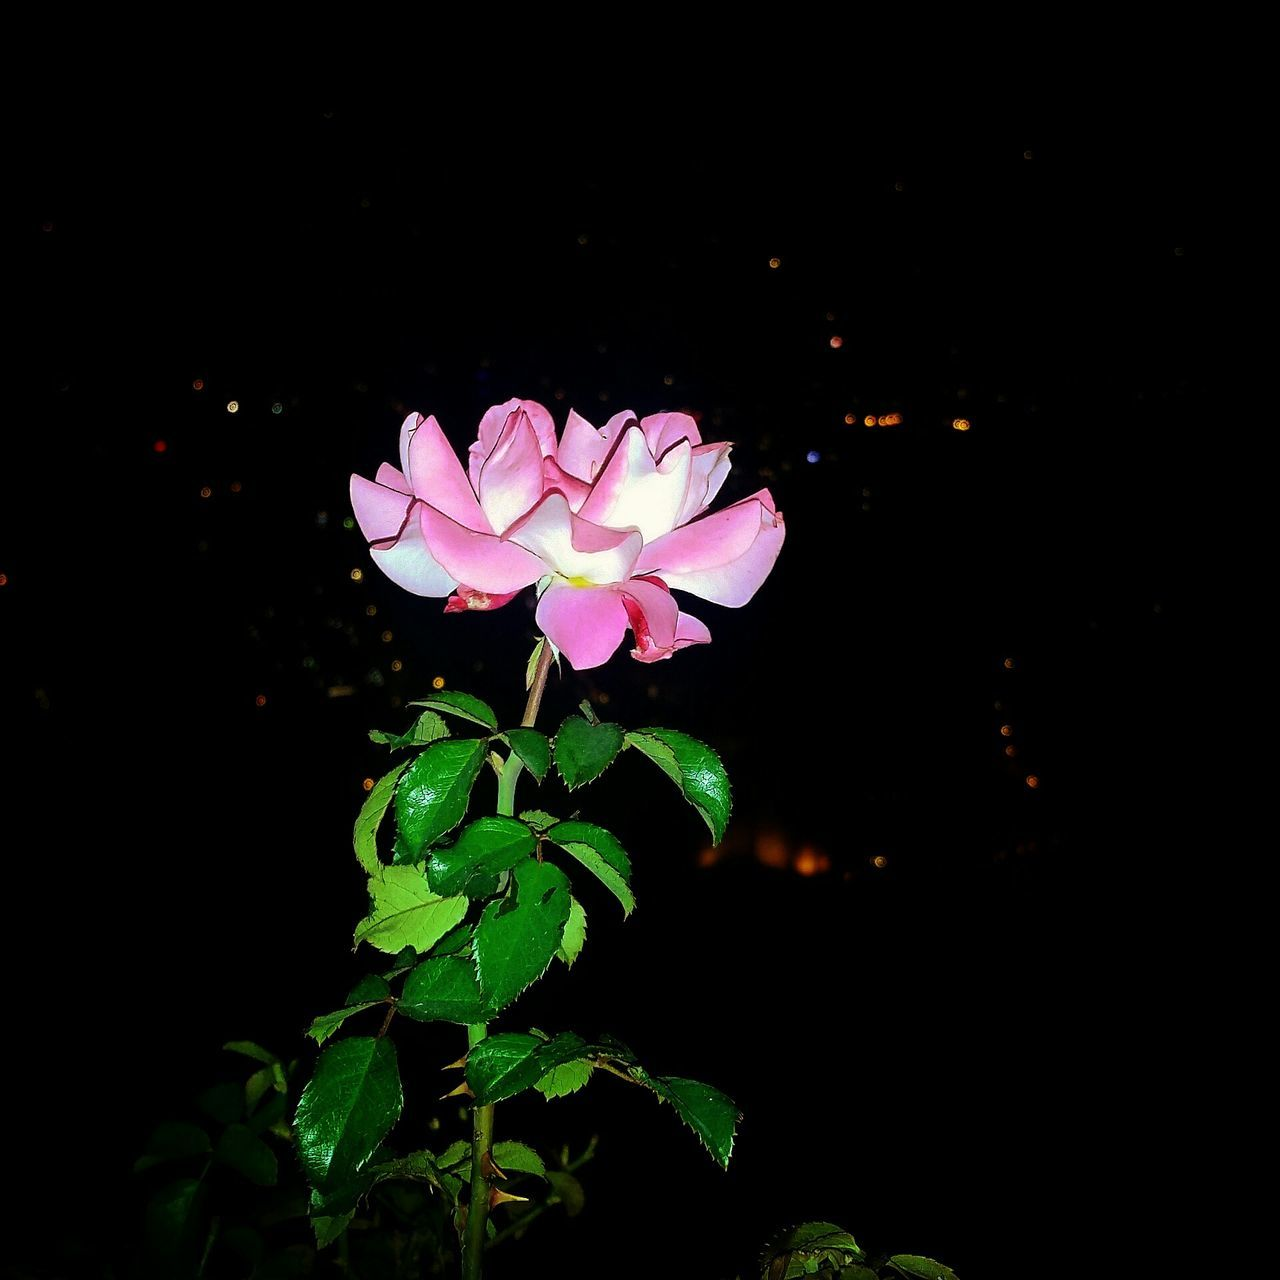 Roses Rose🌹 Rose♥ Nightphotography Castle Nature View Nightview Flower Alanyacastle Alanya Night Pink Rose Pink Turkey Color Photography Naturelovers Green Likeforlike Lifestyle Pretty ın Pink Türkiye Hello World WOW Beauty Turkishfollowers